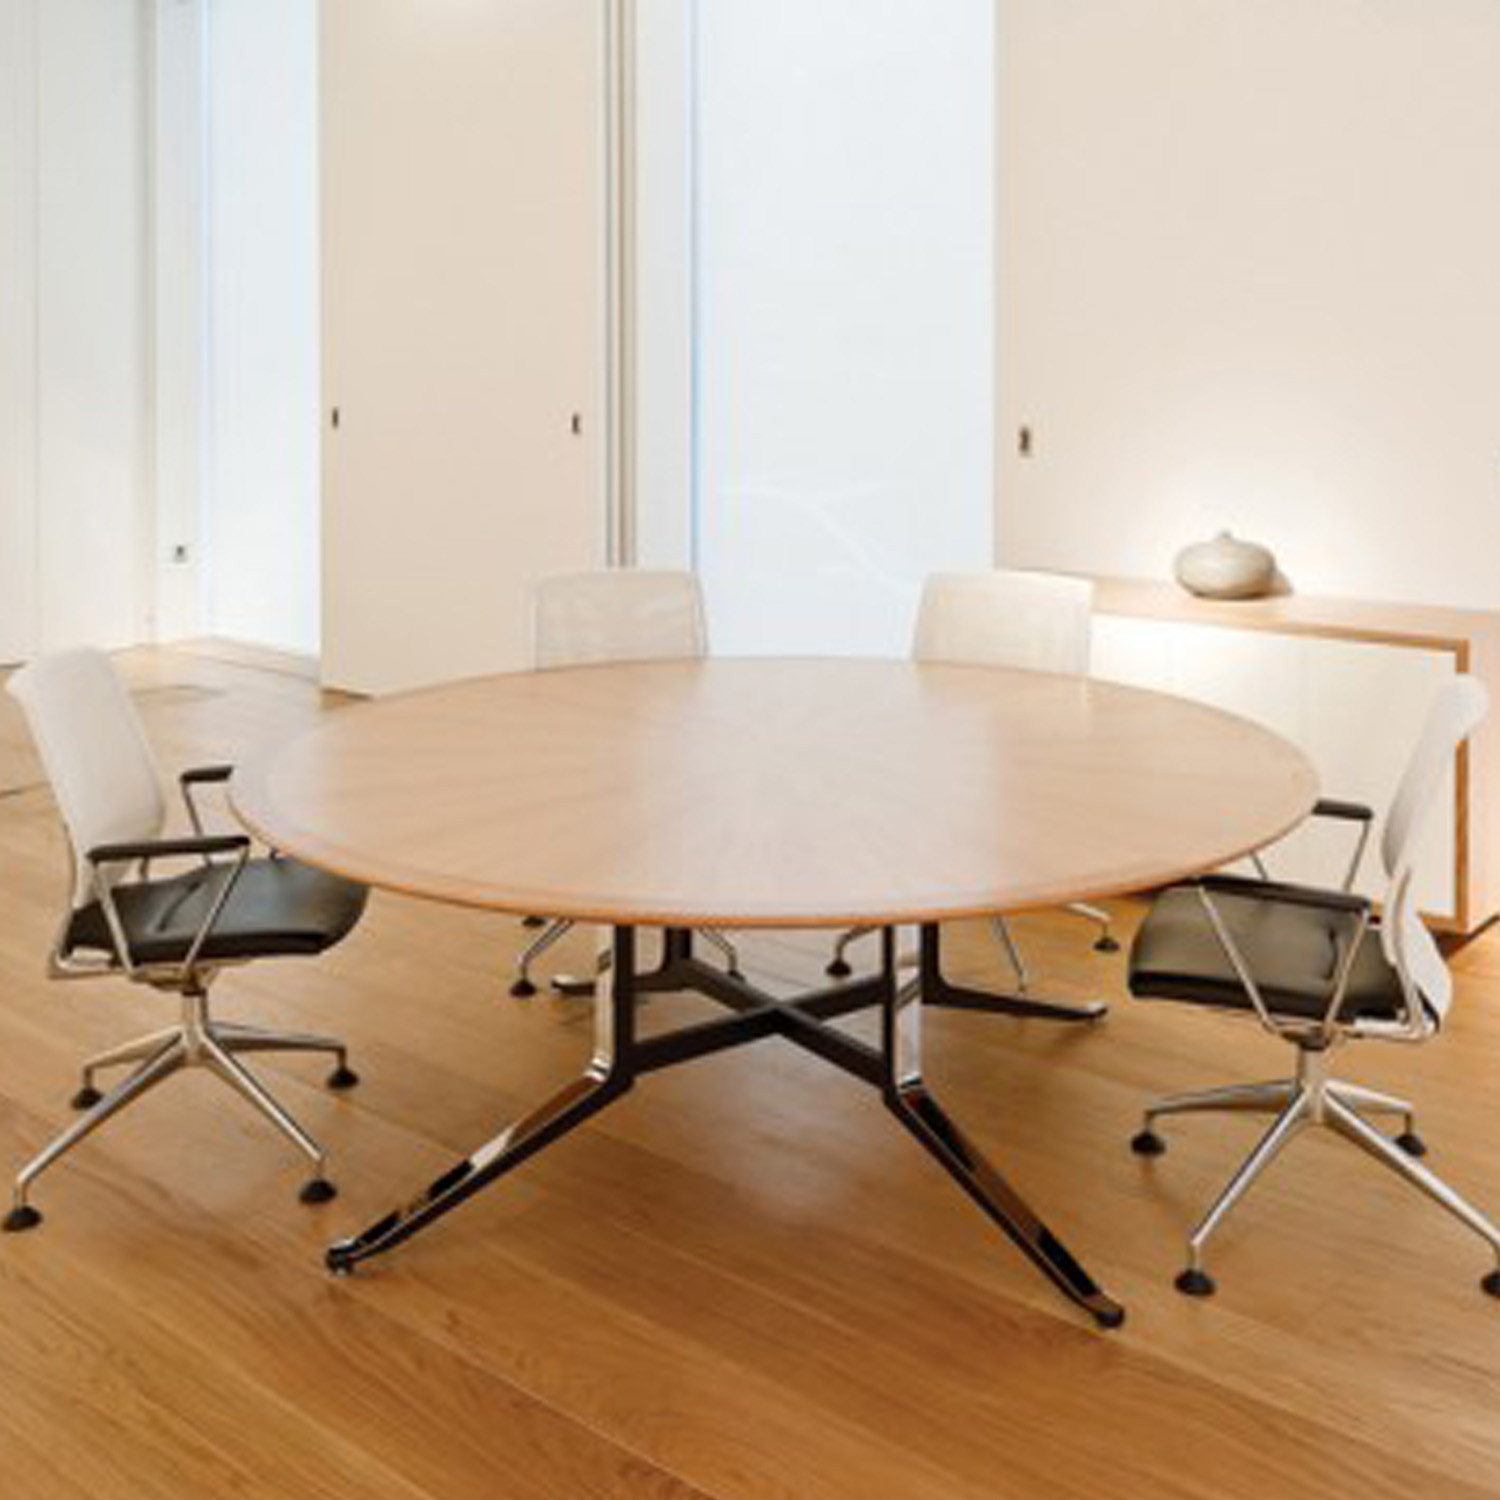 Corsair Round Meeting Table